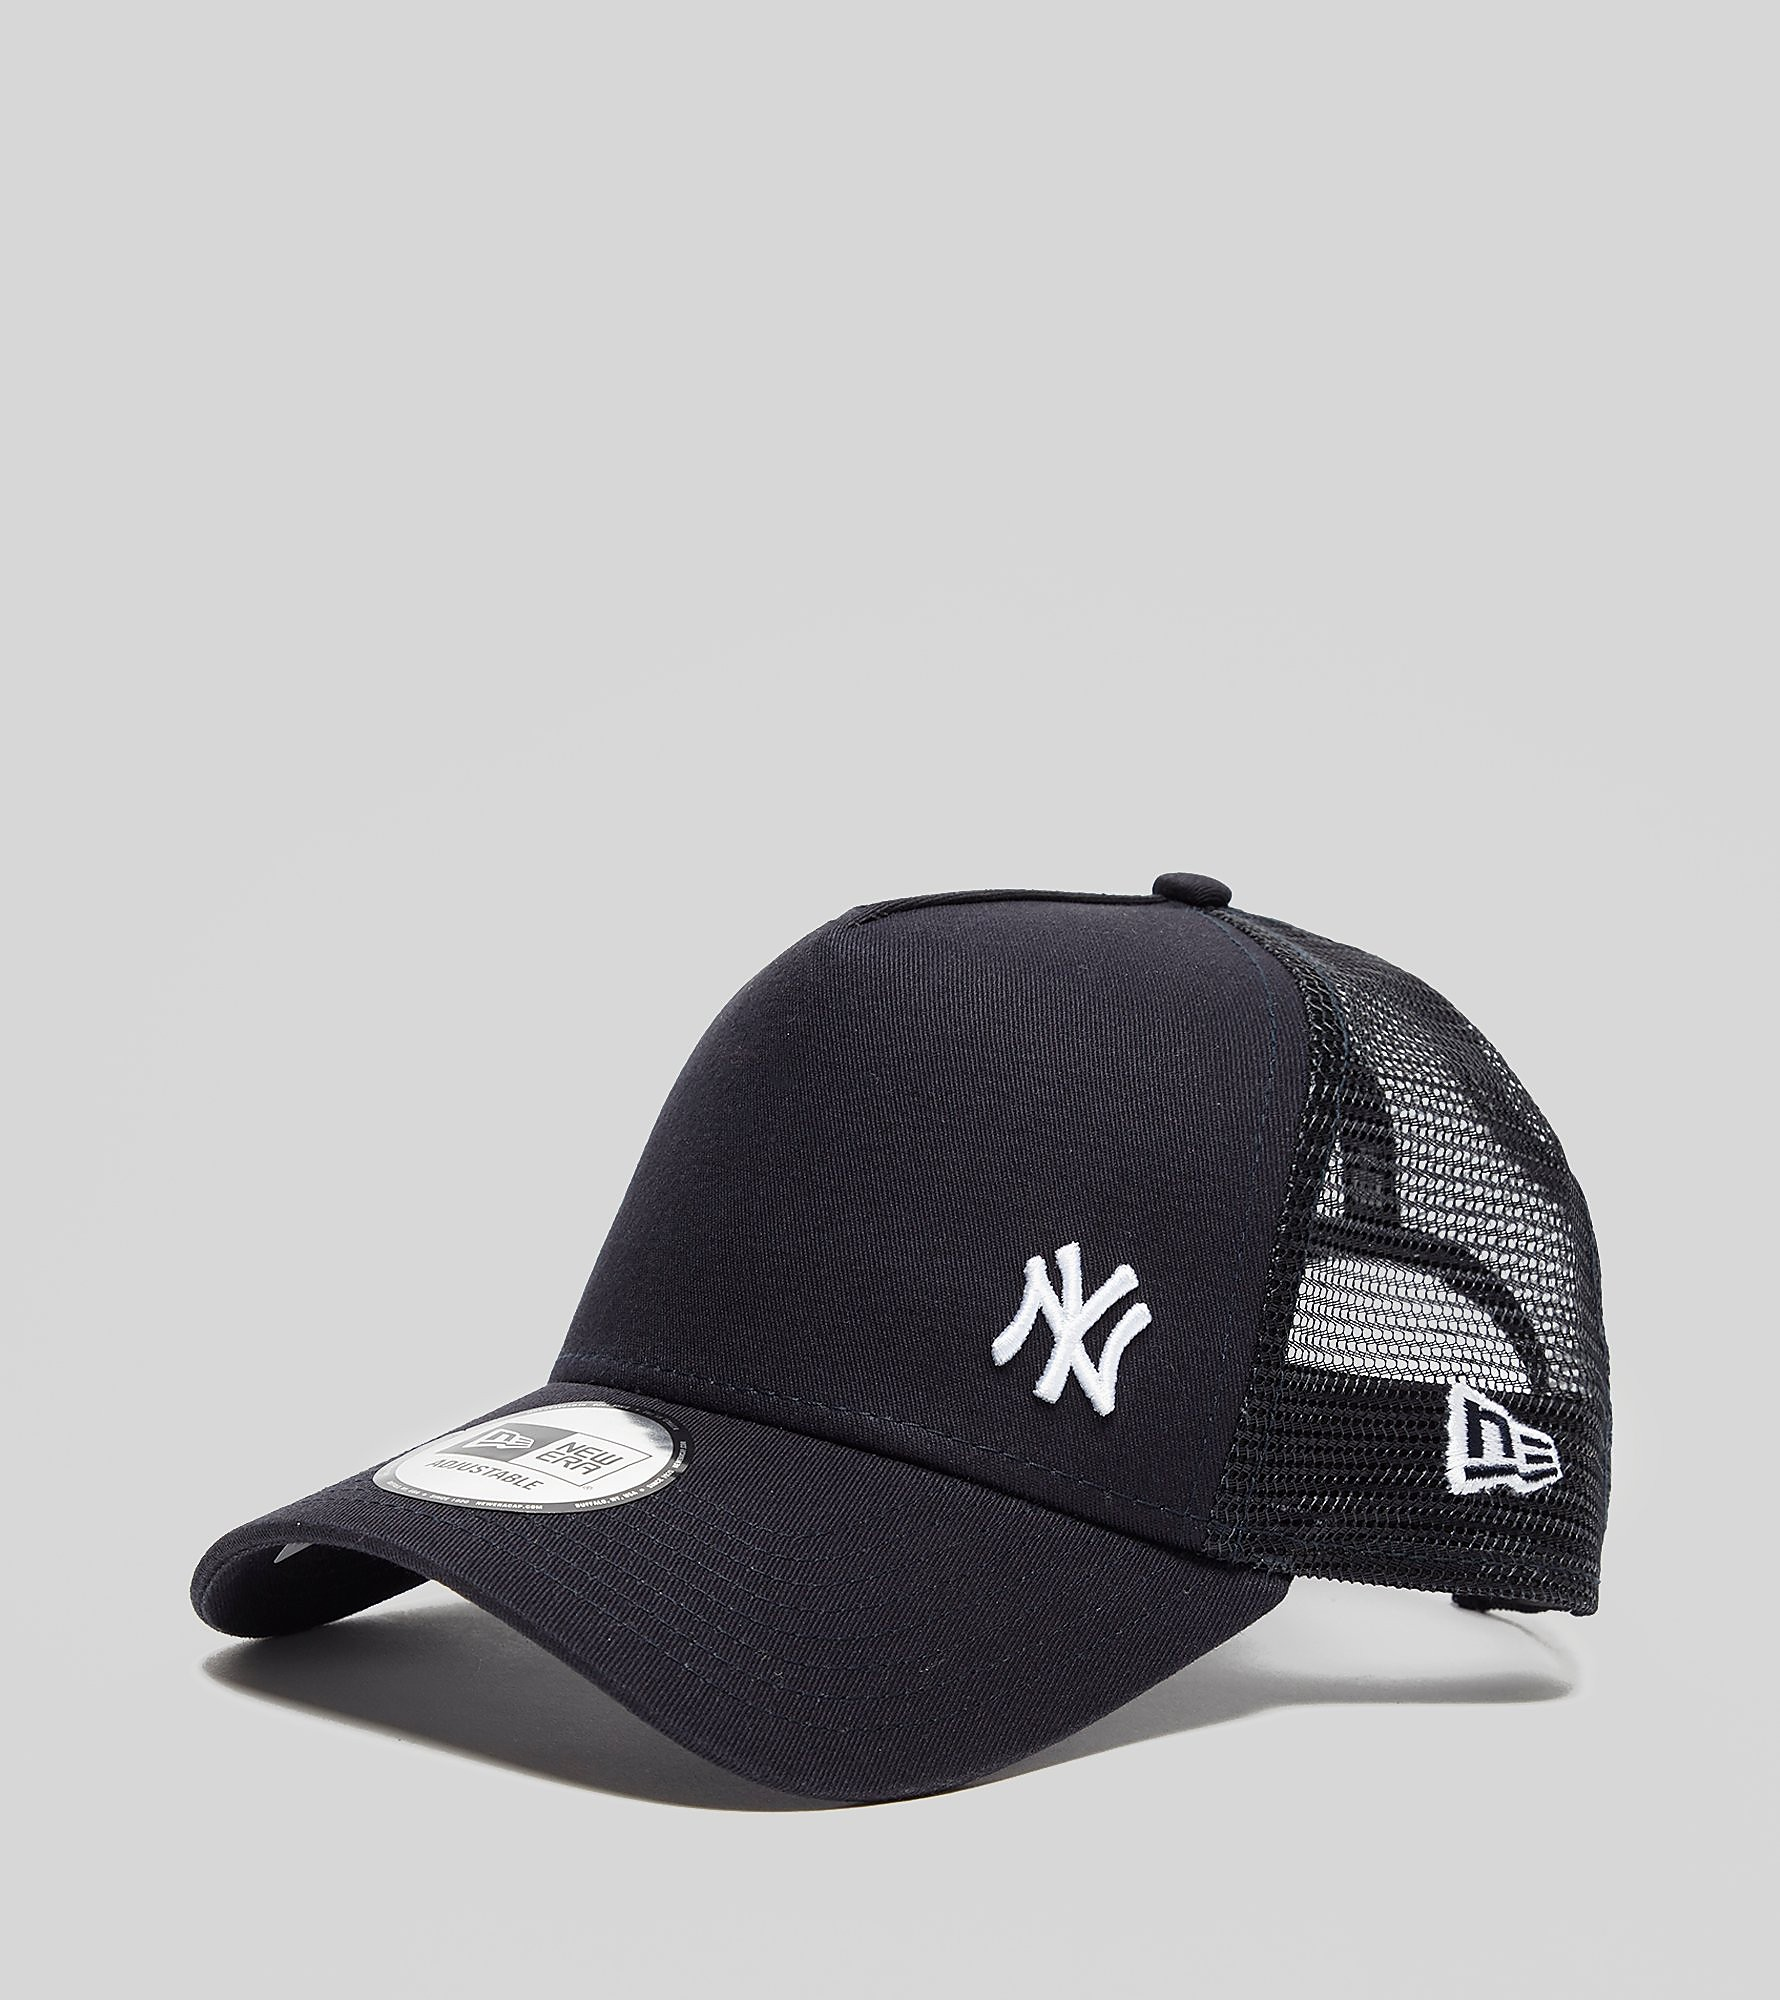 New Era Casquette A Frame Trucker  - exclusivité size?